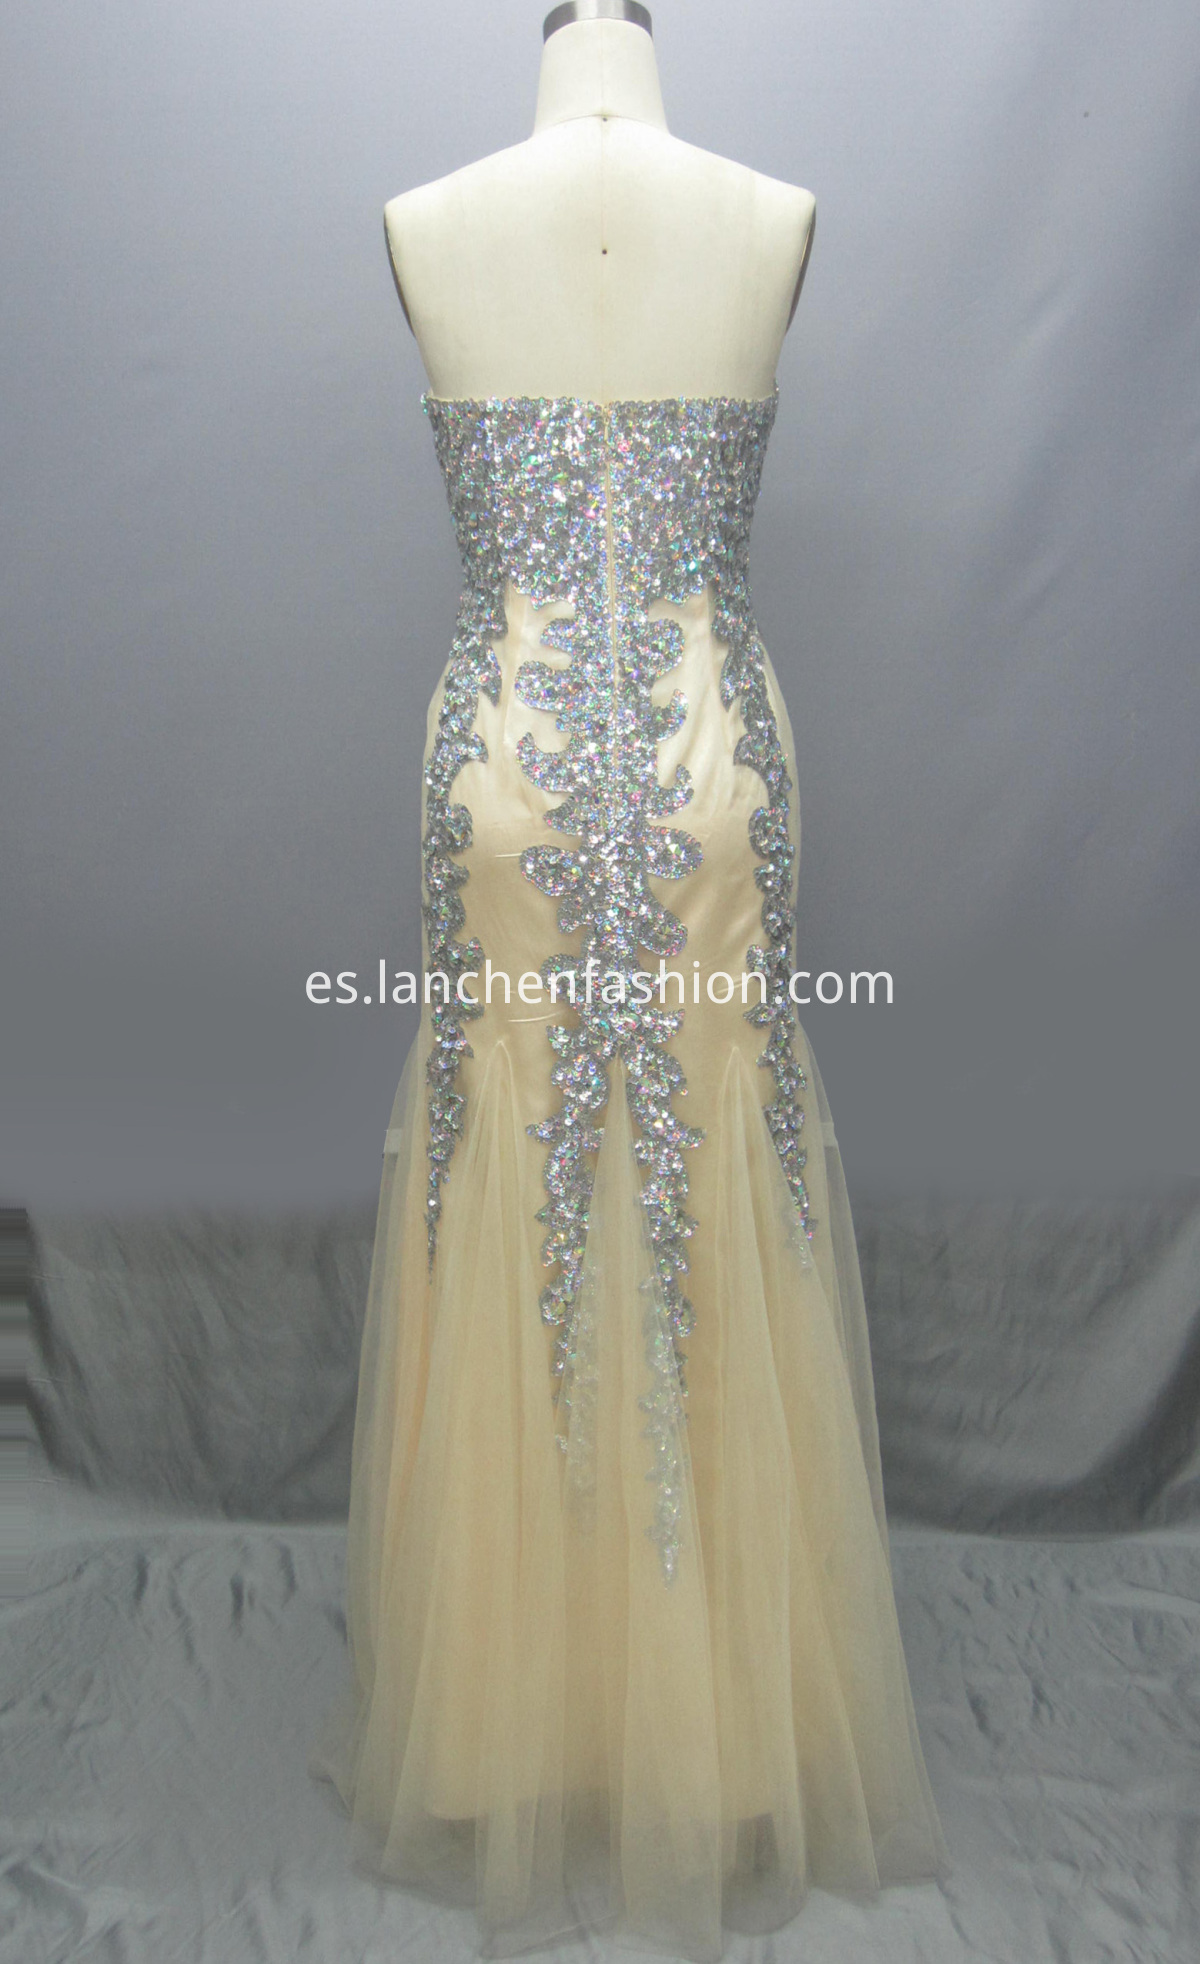 Sweetheart Long Dress back